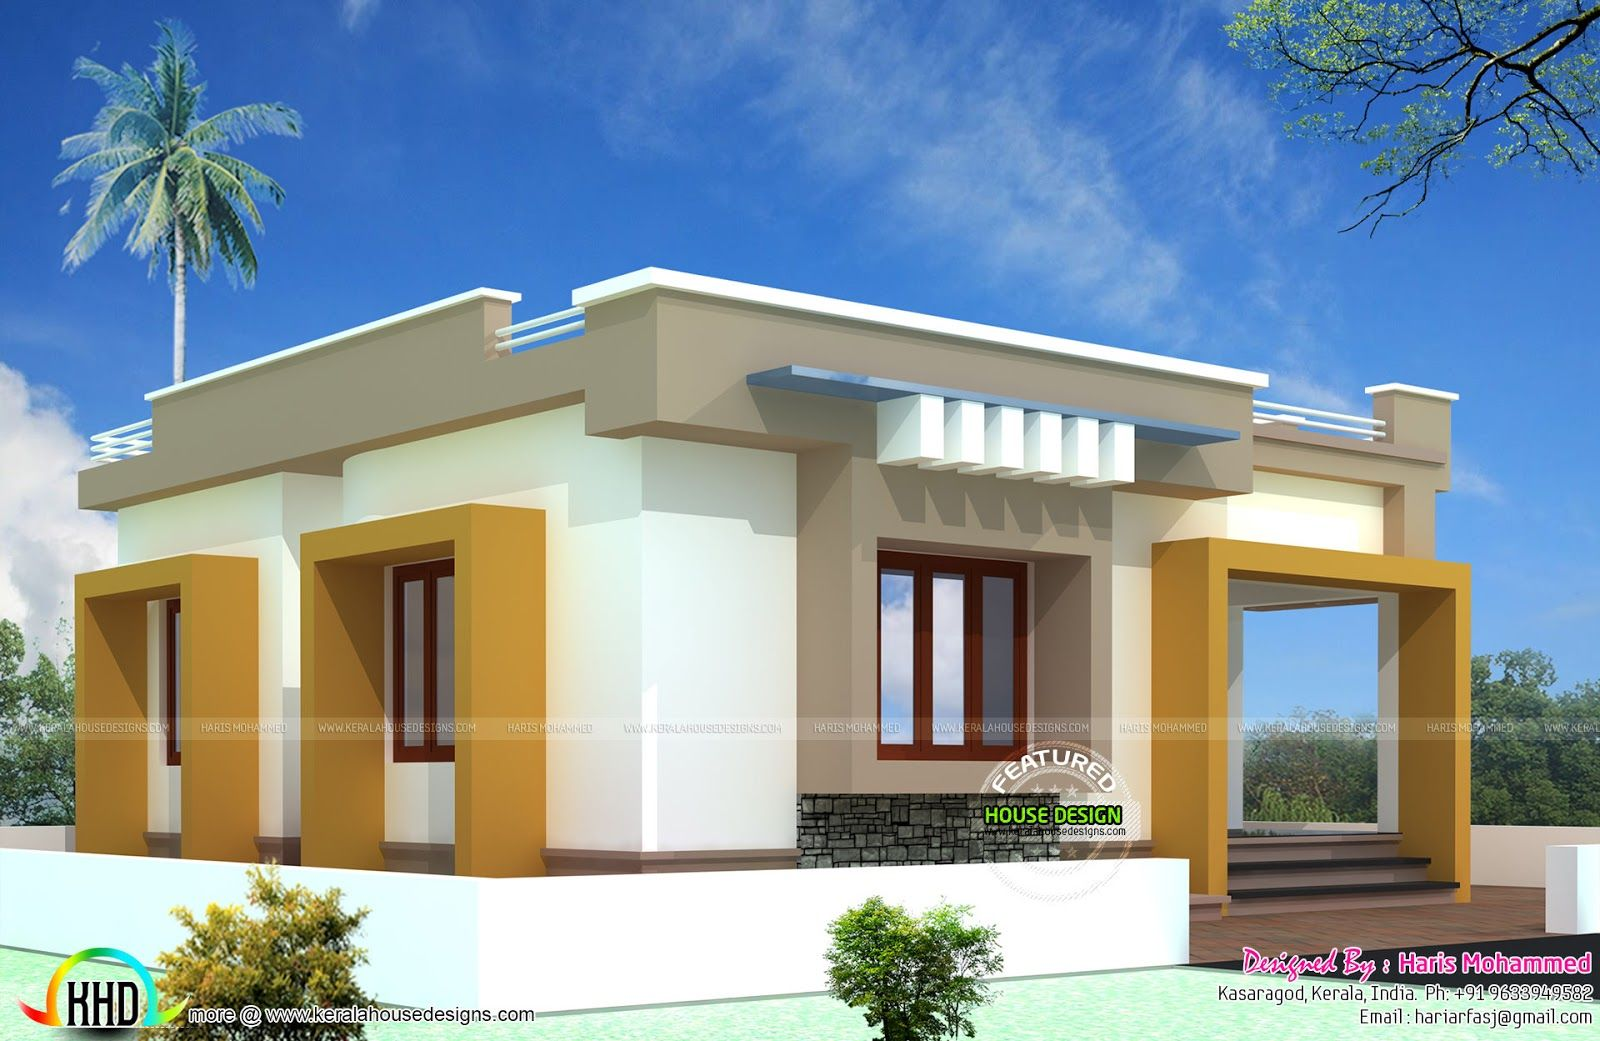 Single Story Home Exterior Design Html on exterior retail store design, two-story office building design, wood house design, home house design, rustic modern home design, one story house roof design, single level homes, kerala flat roof house design, single story home with round columns, mid century modern lake home design, single story traditional home exteriors, single story interior design, building exterior design,